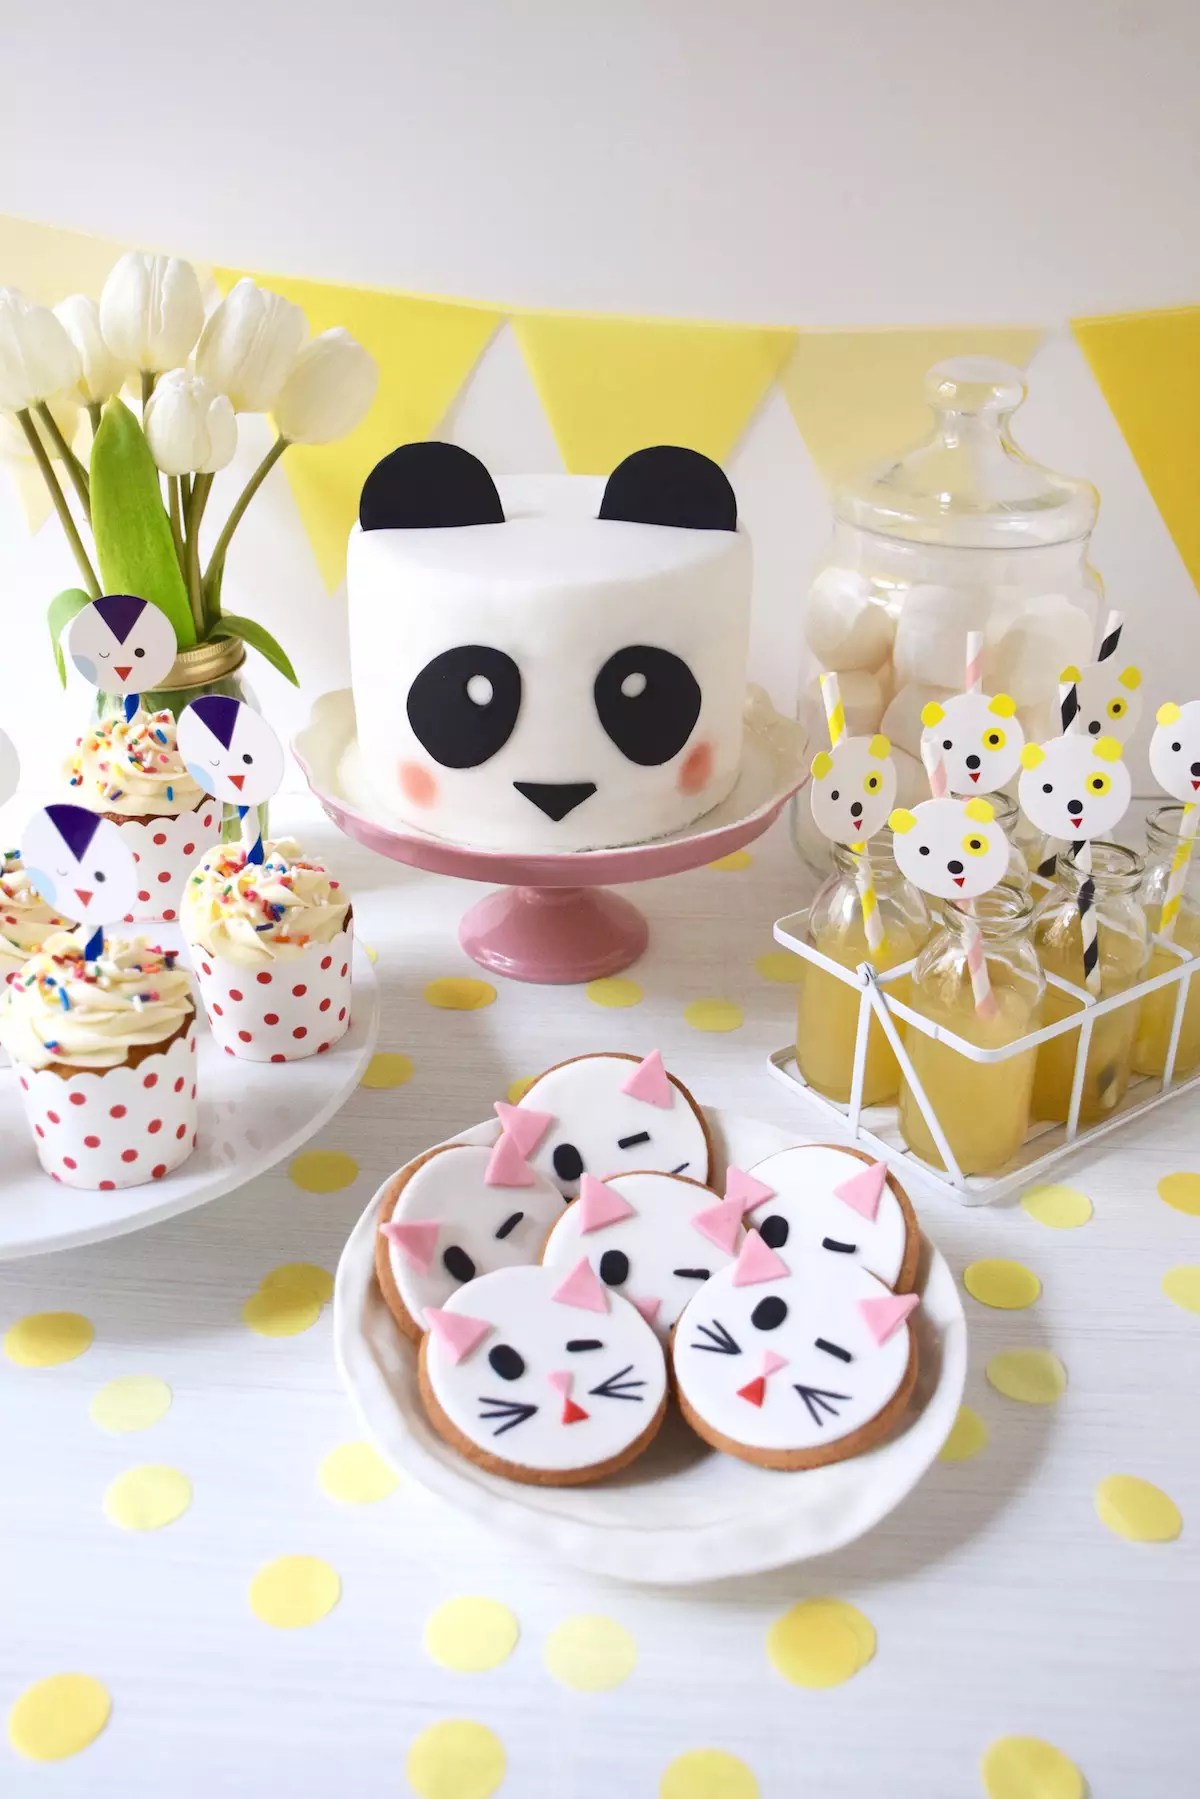 Decoration Facile Gateau Anniversaire Sweet Table Facile Animaux